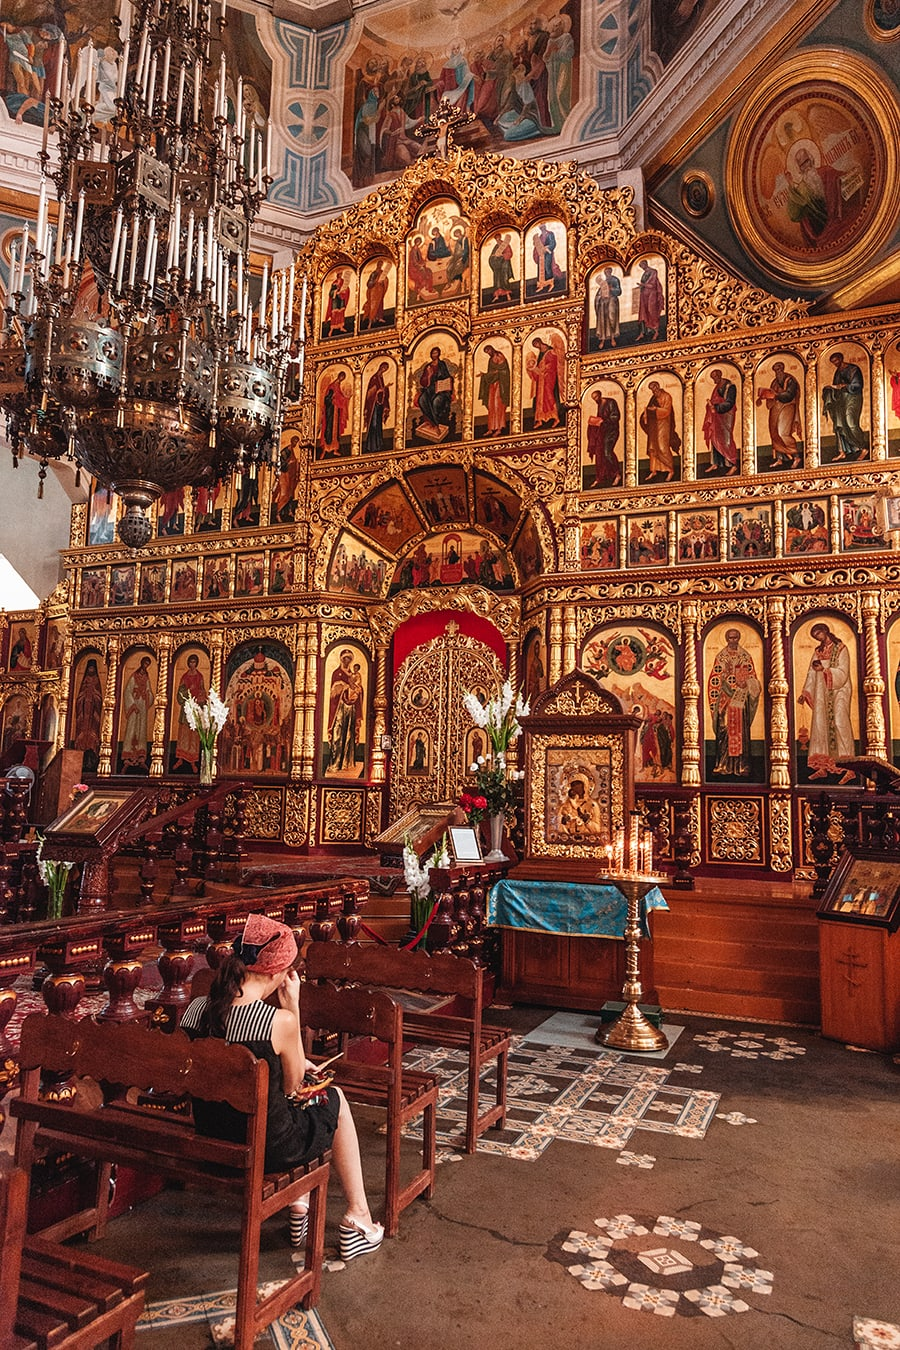 The elaborate interior of Almaty's Russian Cathedral.